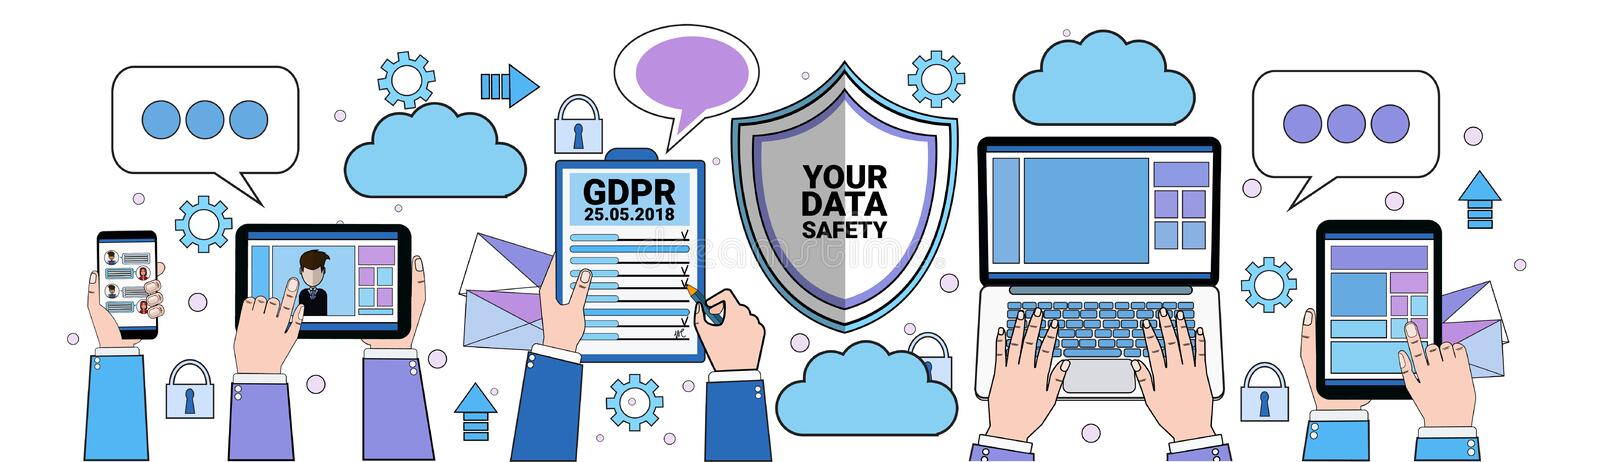 Data safety cloud shield tablet padlock over synchronization General Data Protection Regulation GDPR server security royalty free illustration